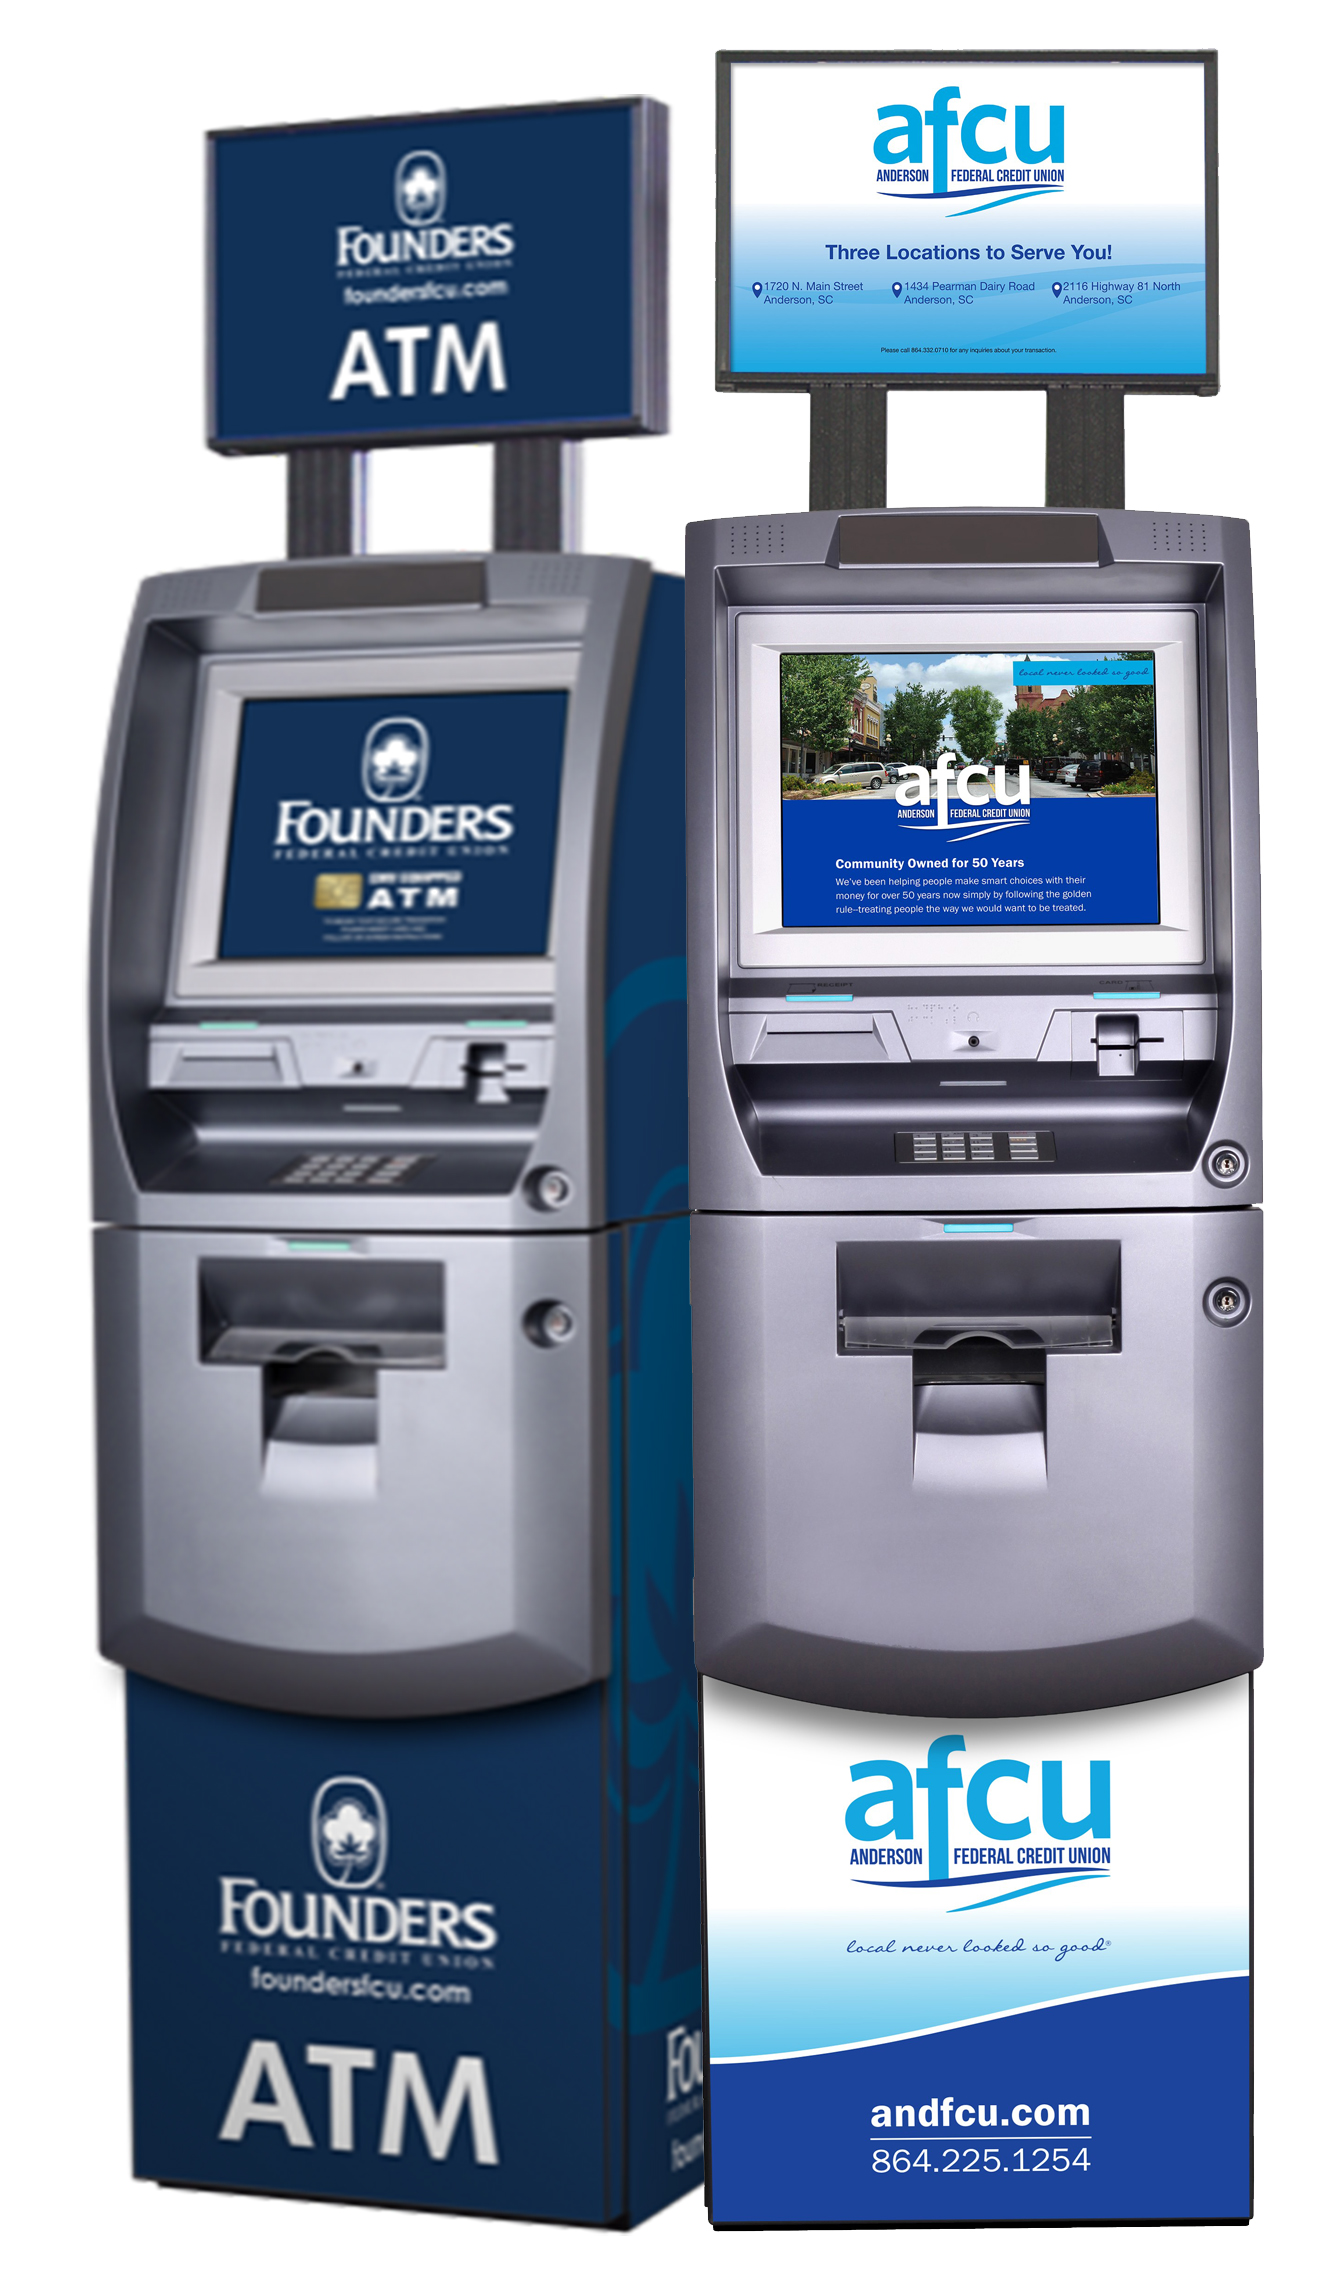 branded-ATMs-credit-union-at-work-page.jpg